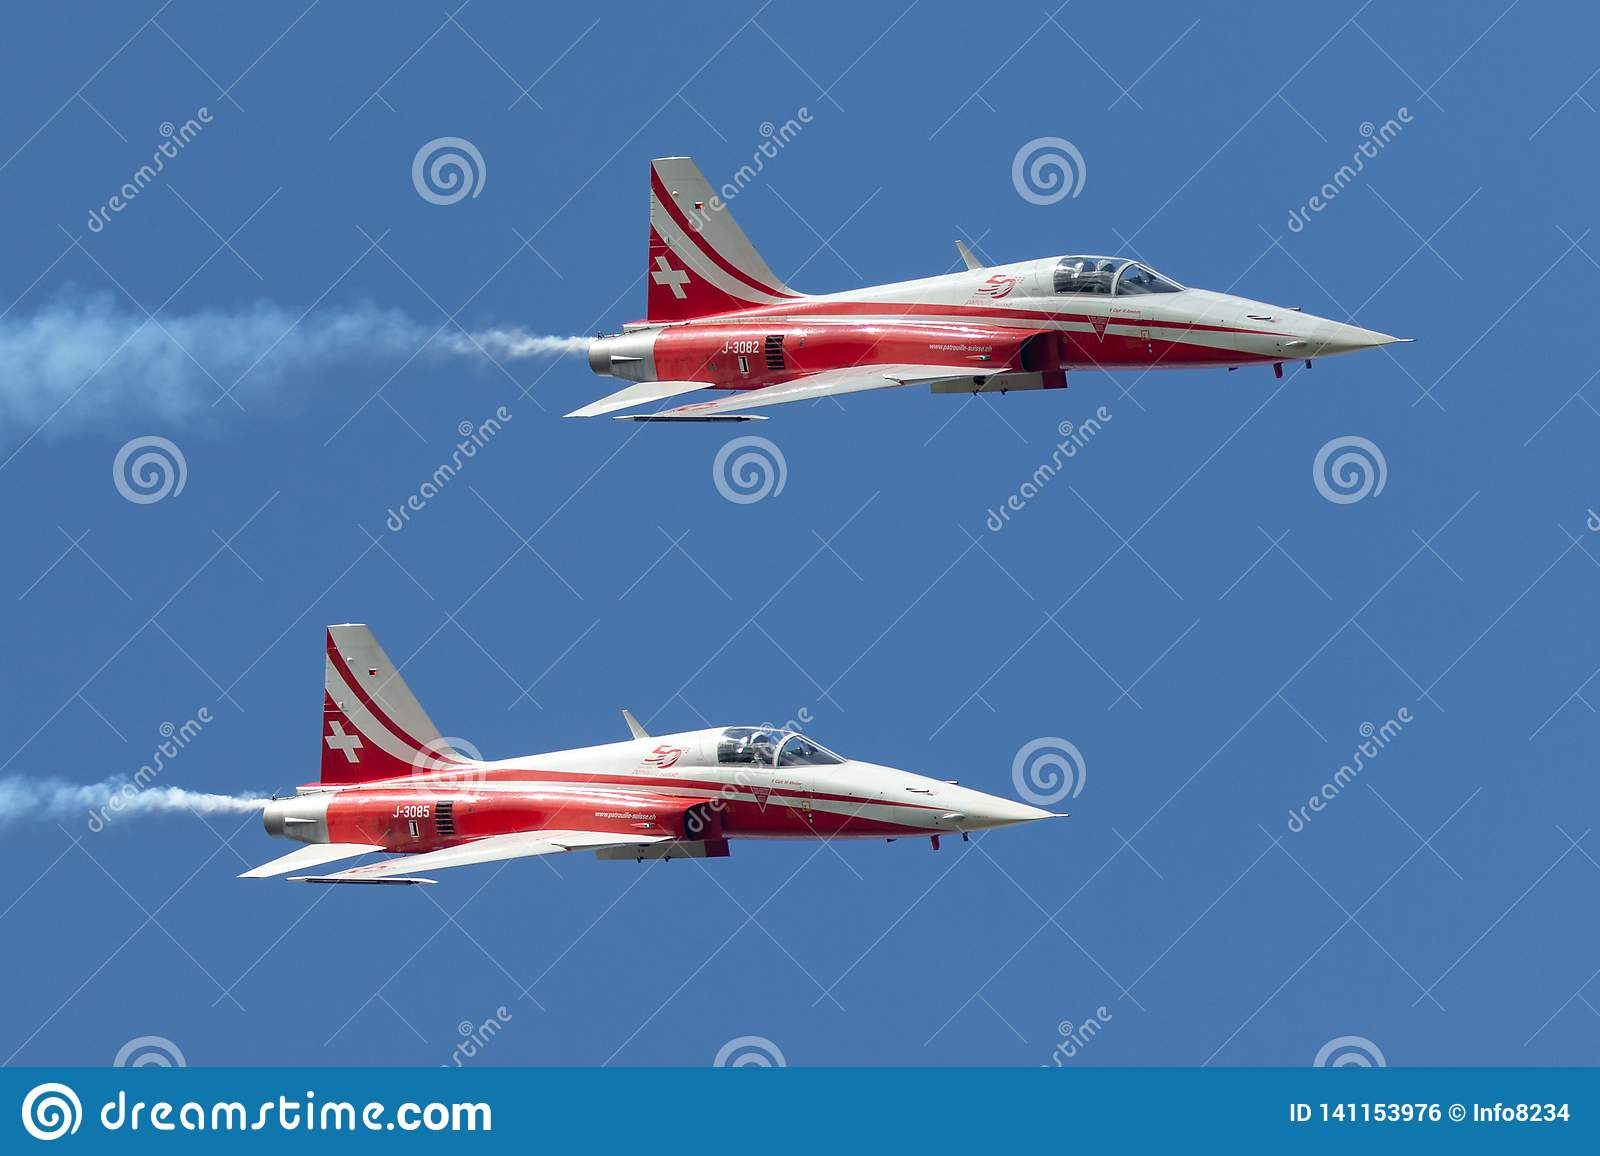 Patrouille Suisse formation display team of the Swiss Air Force flying Northrop F-5E fighter aircraft joined by the Swiss PC-7 tea